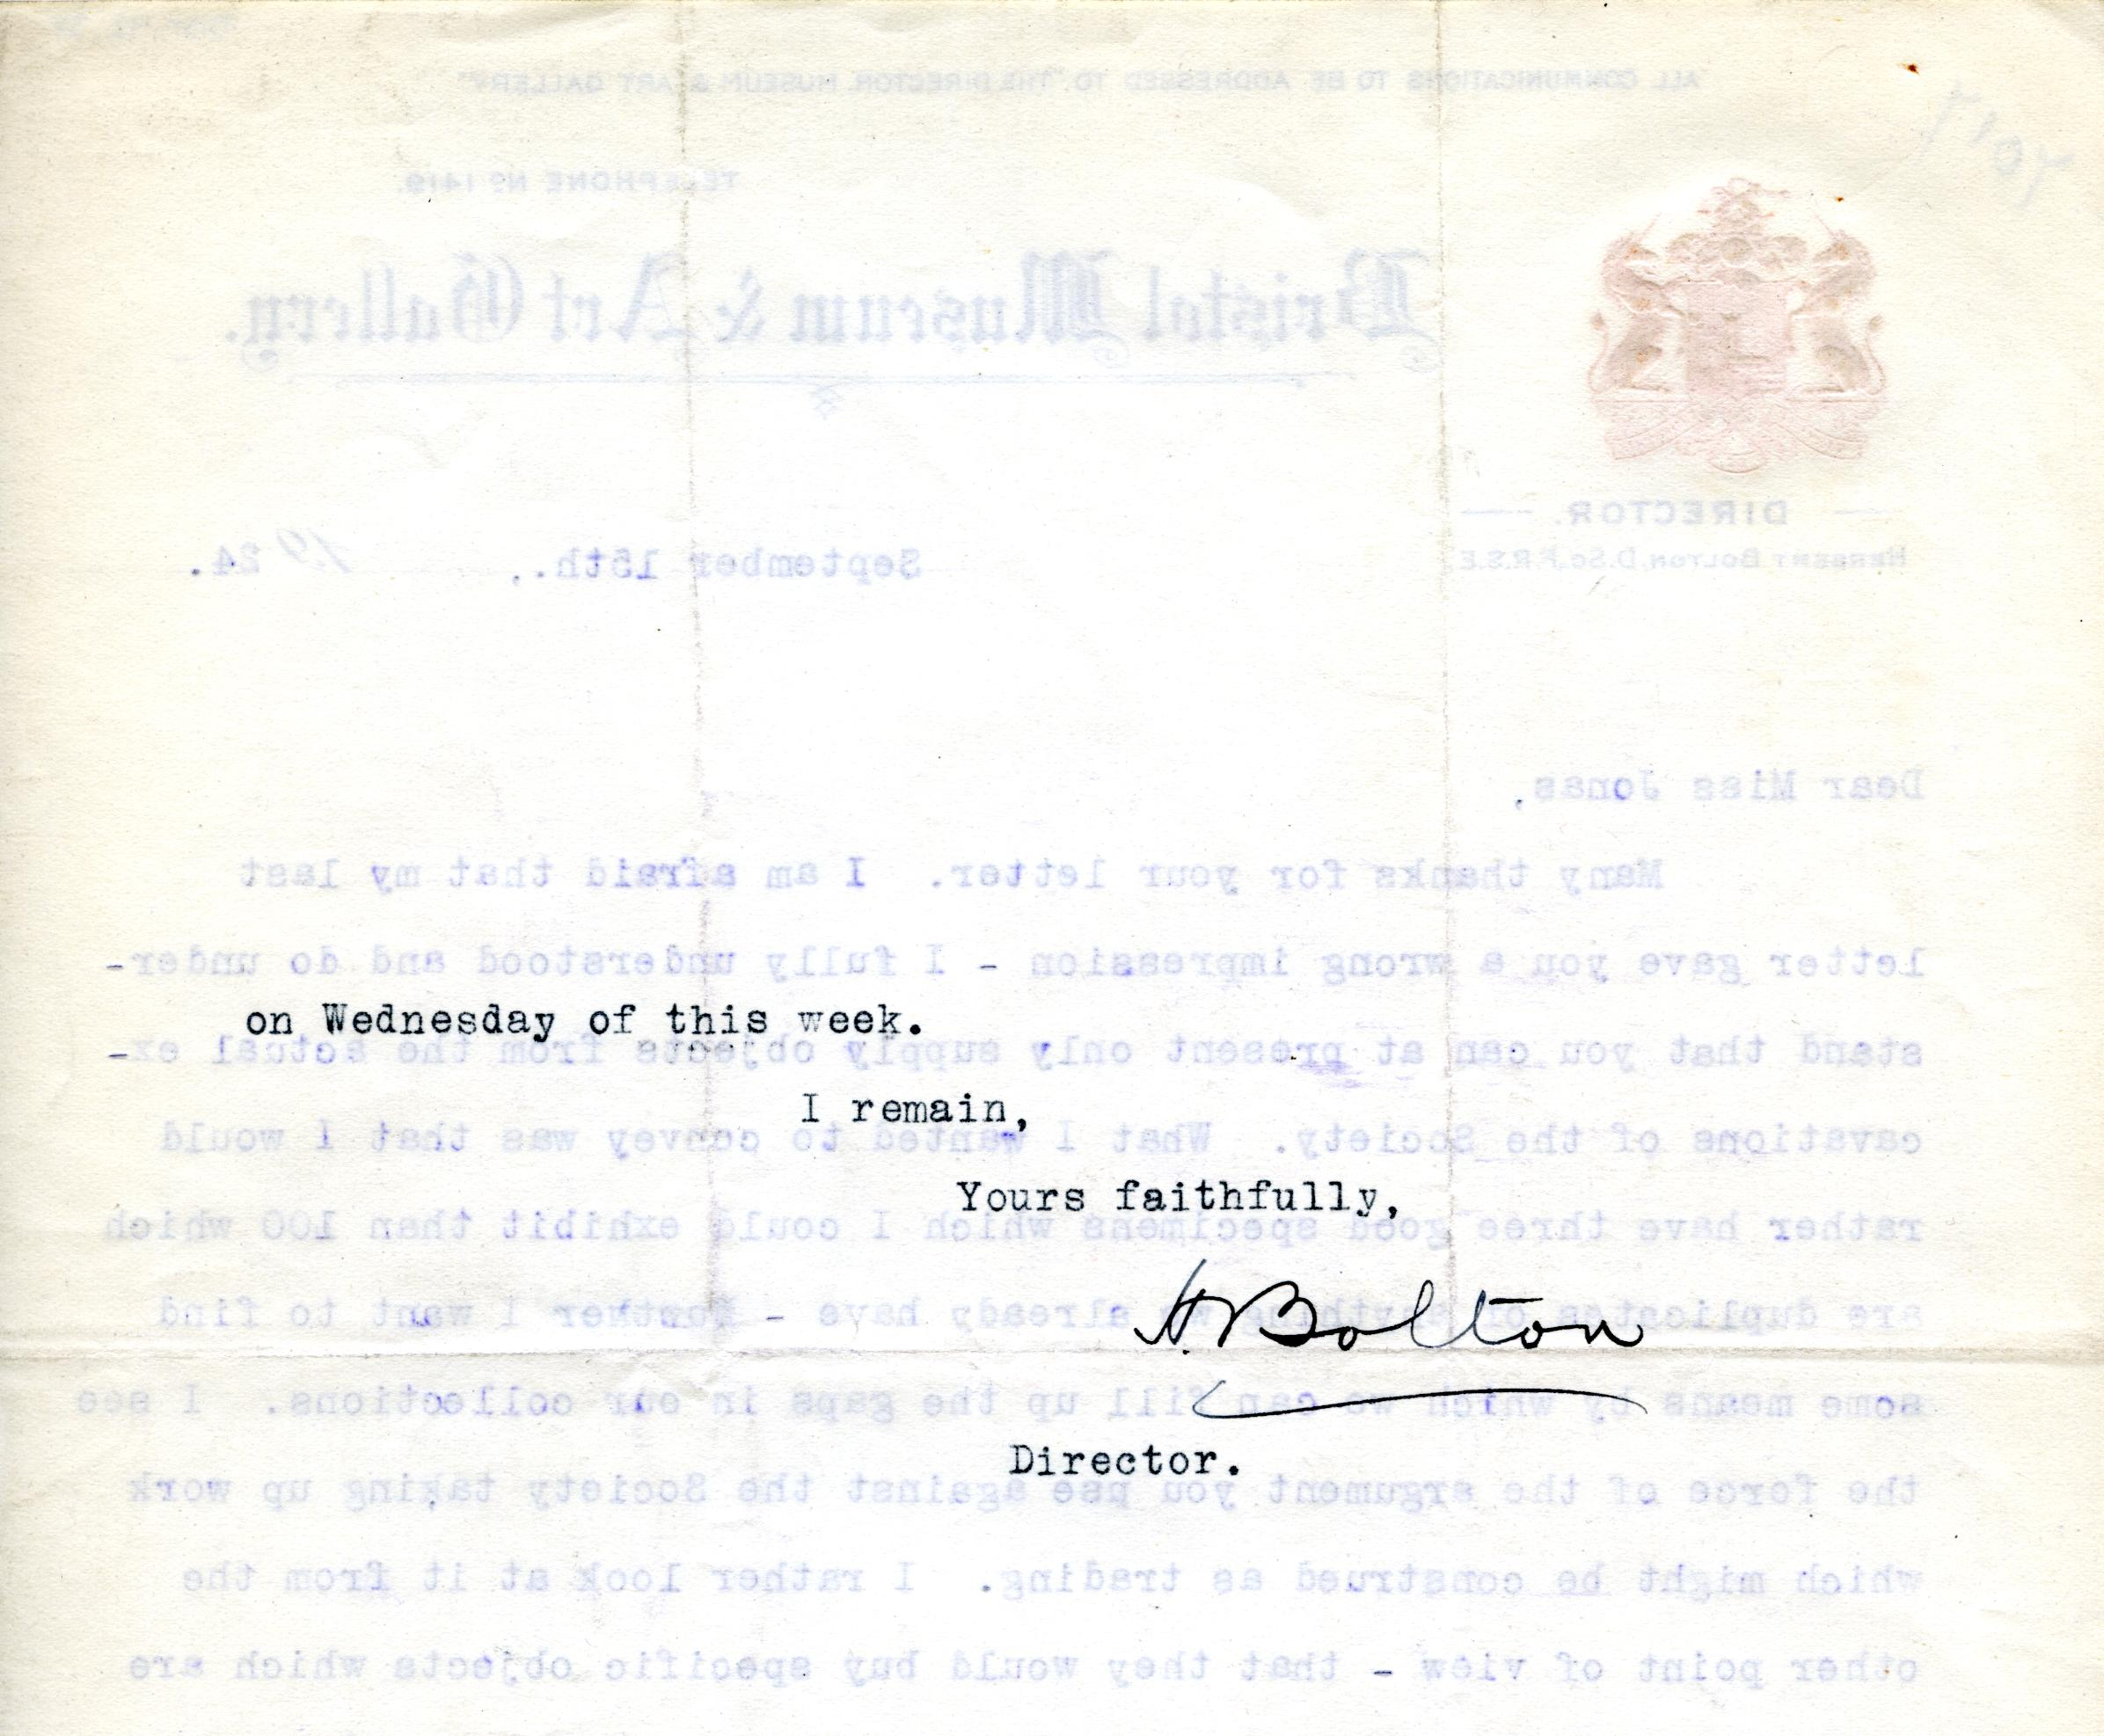 1922-71 Miscellaneous correspondence with museums DIST.42.38b